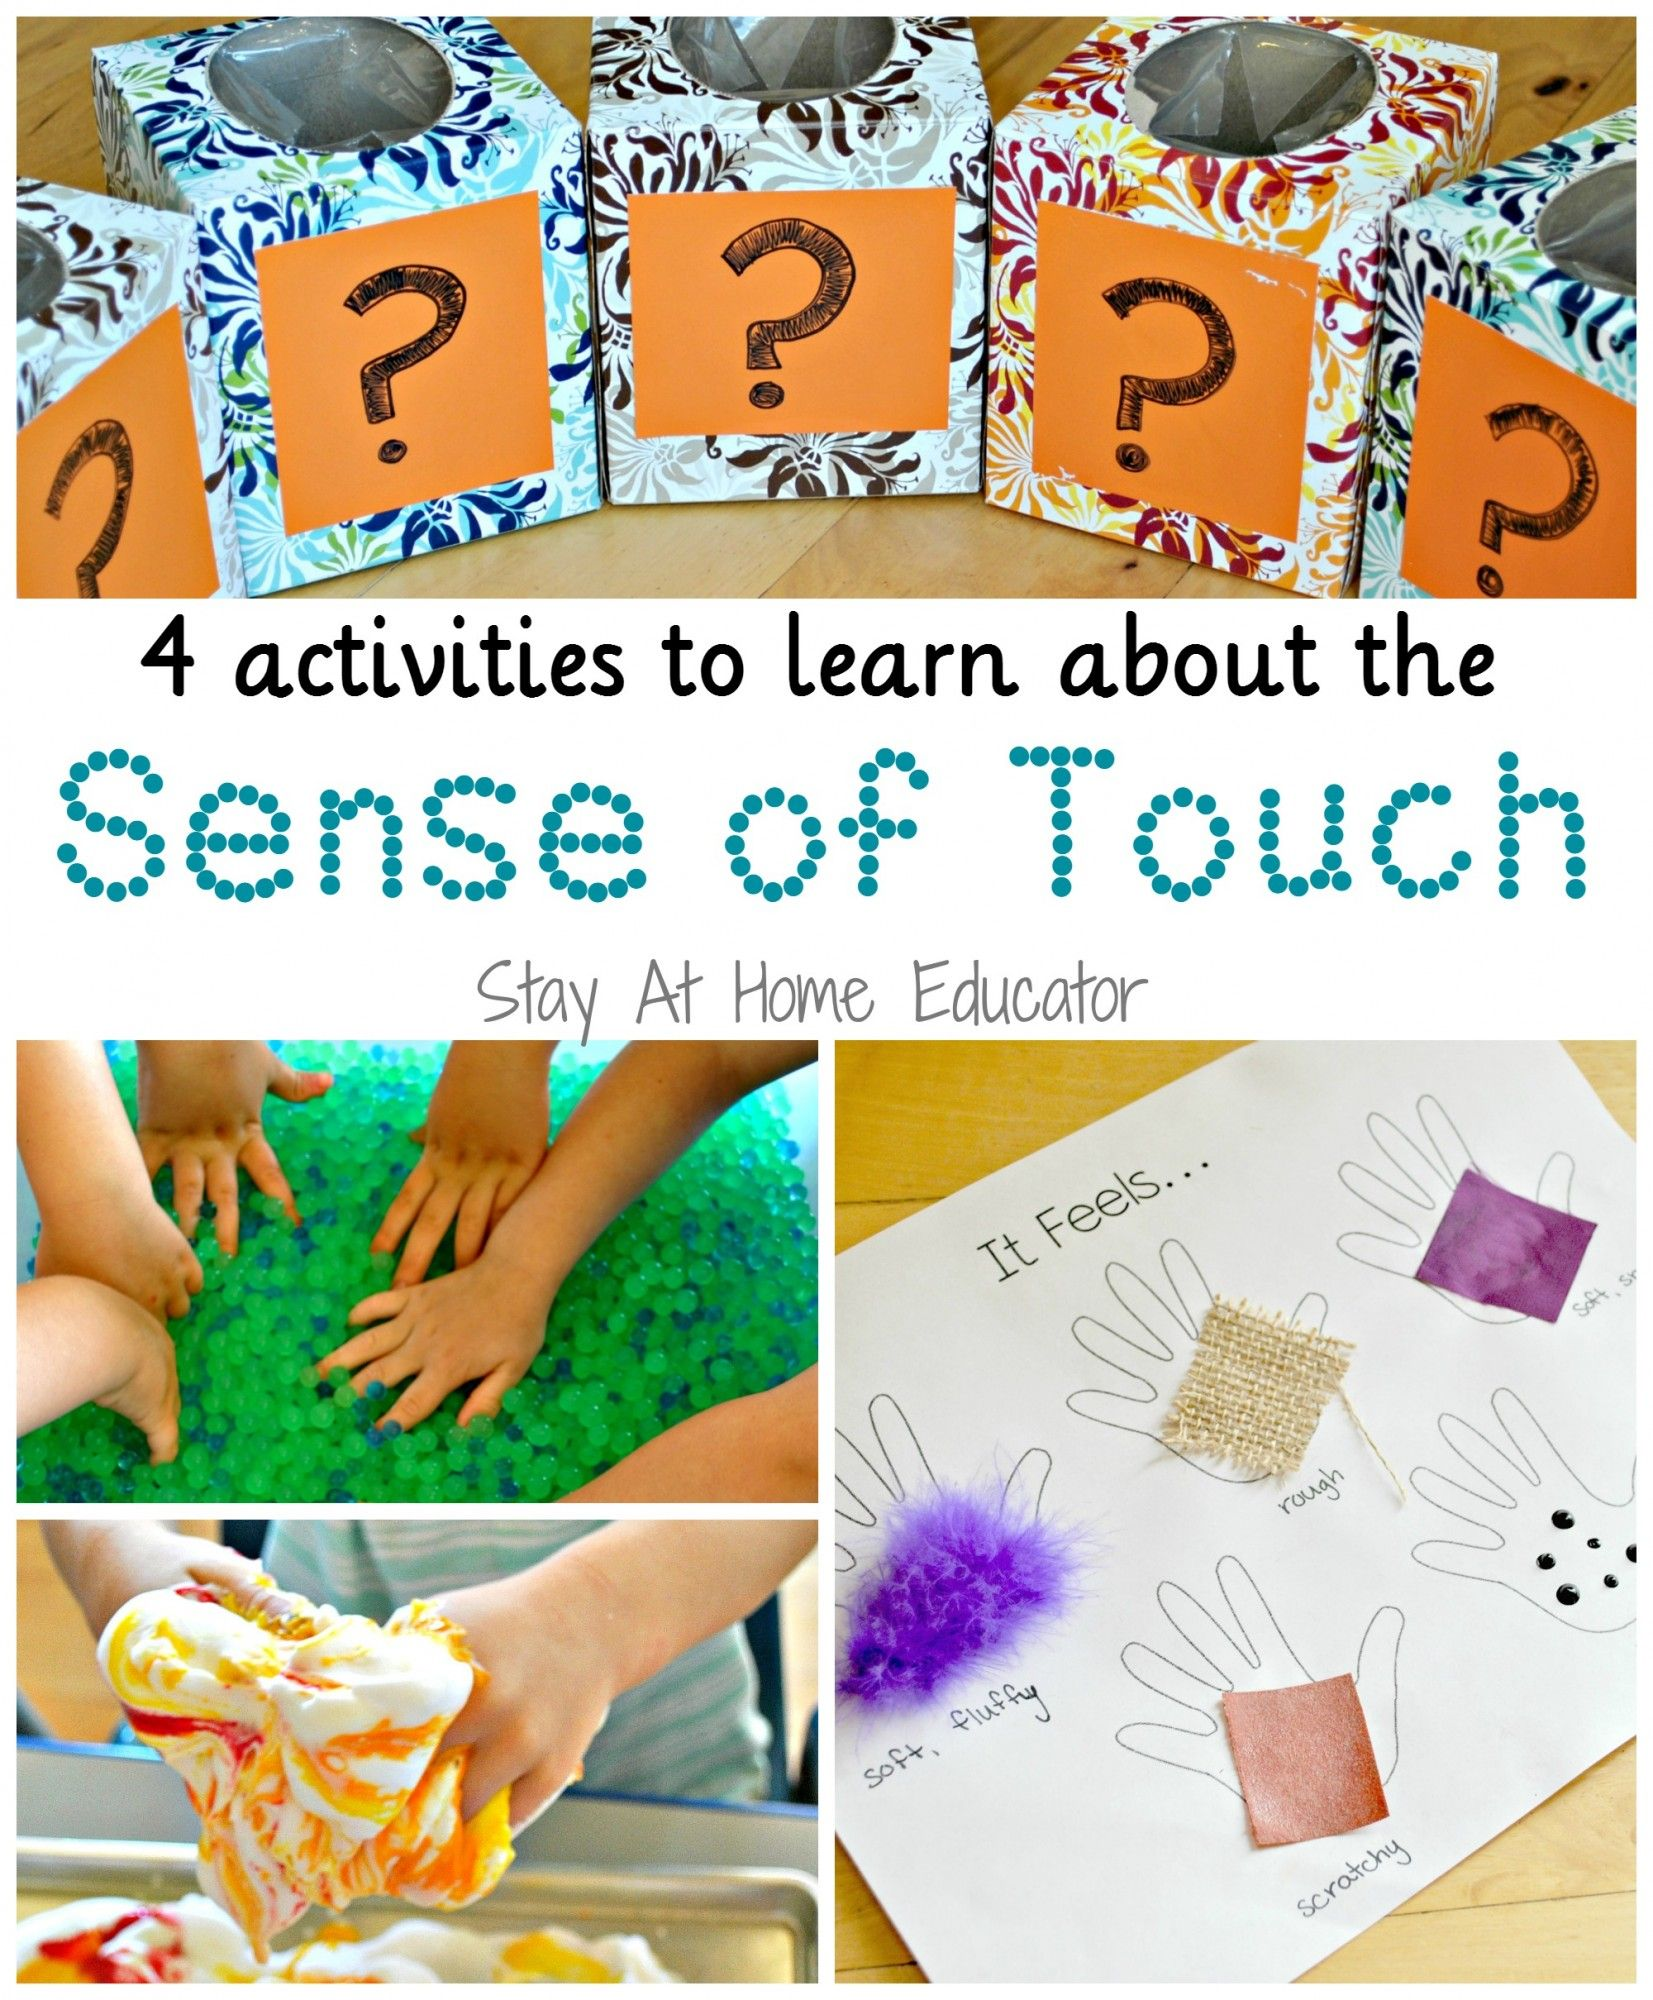 4 Activities To Learn About The Sense Of Touch In Five Senses Preschool Theme